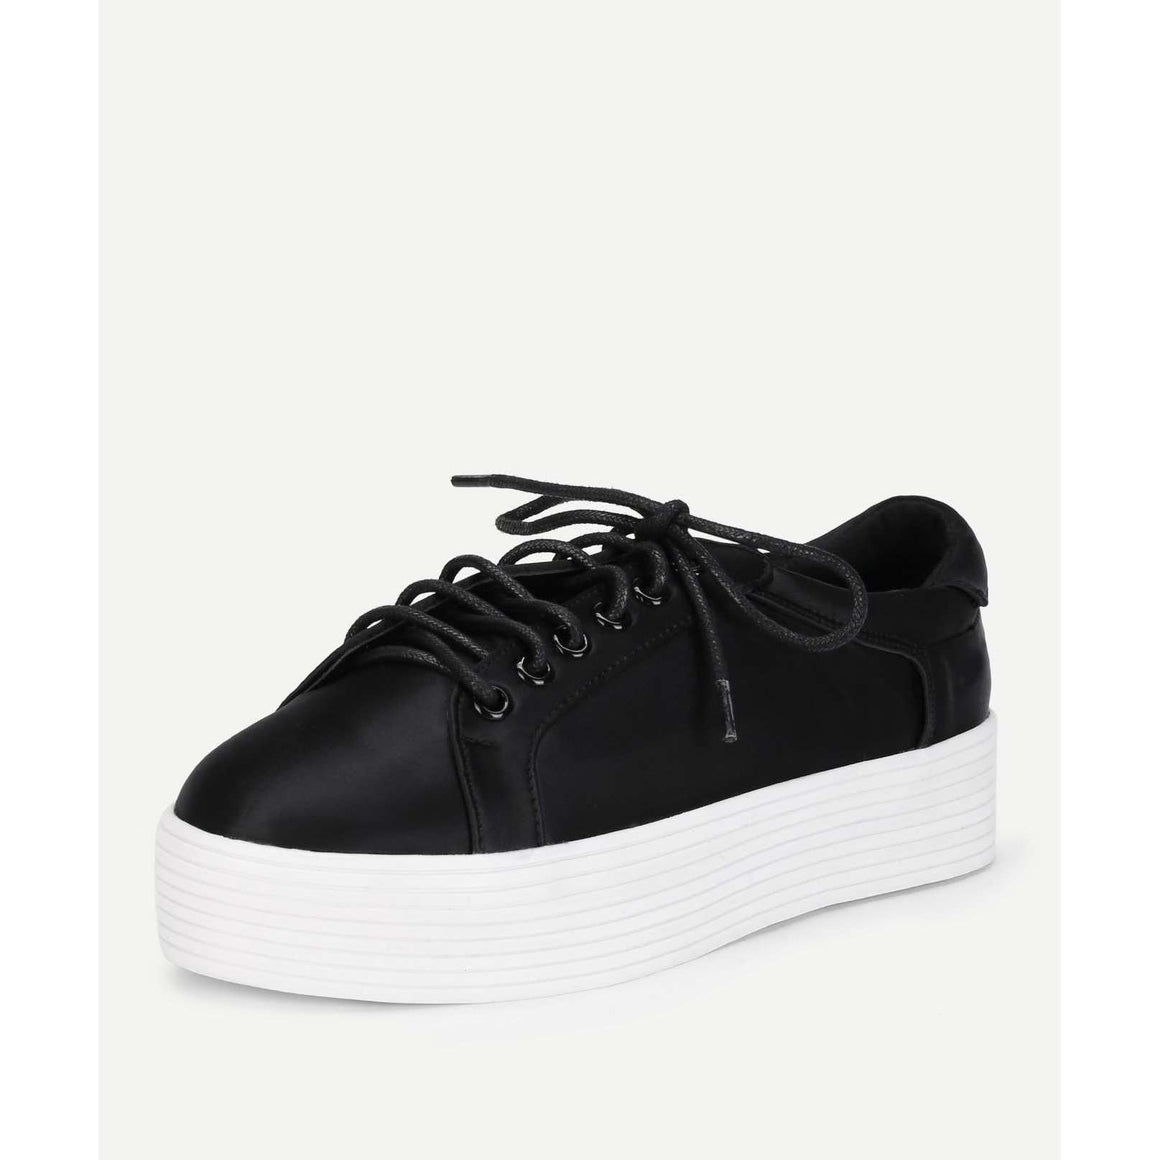 CLOCHE Formal Richness Sneakers-CLOCHE-CLOCHE